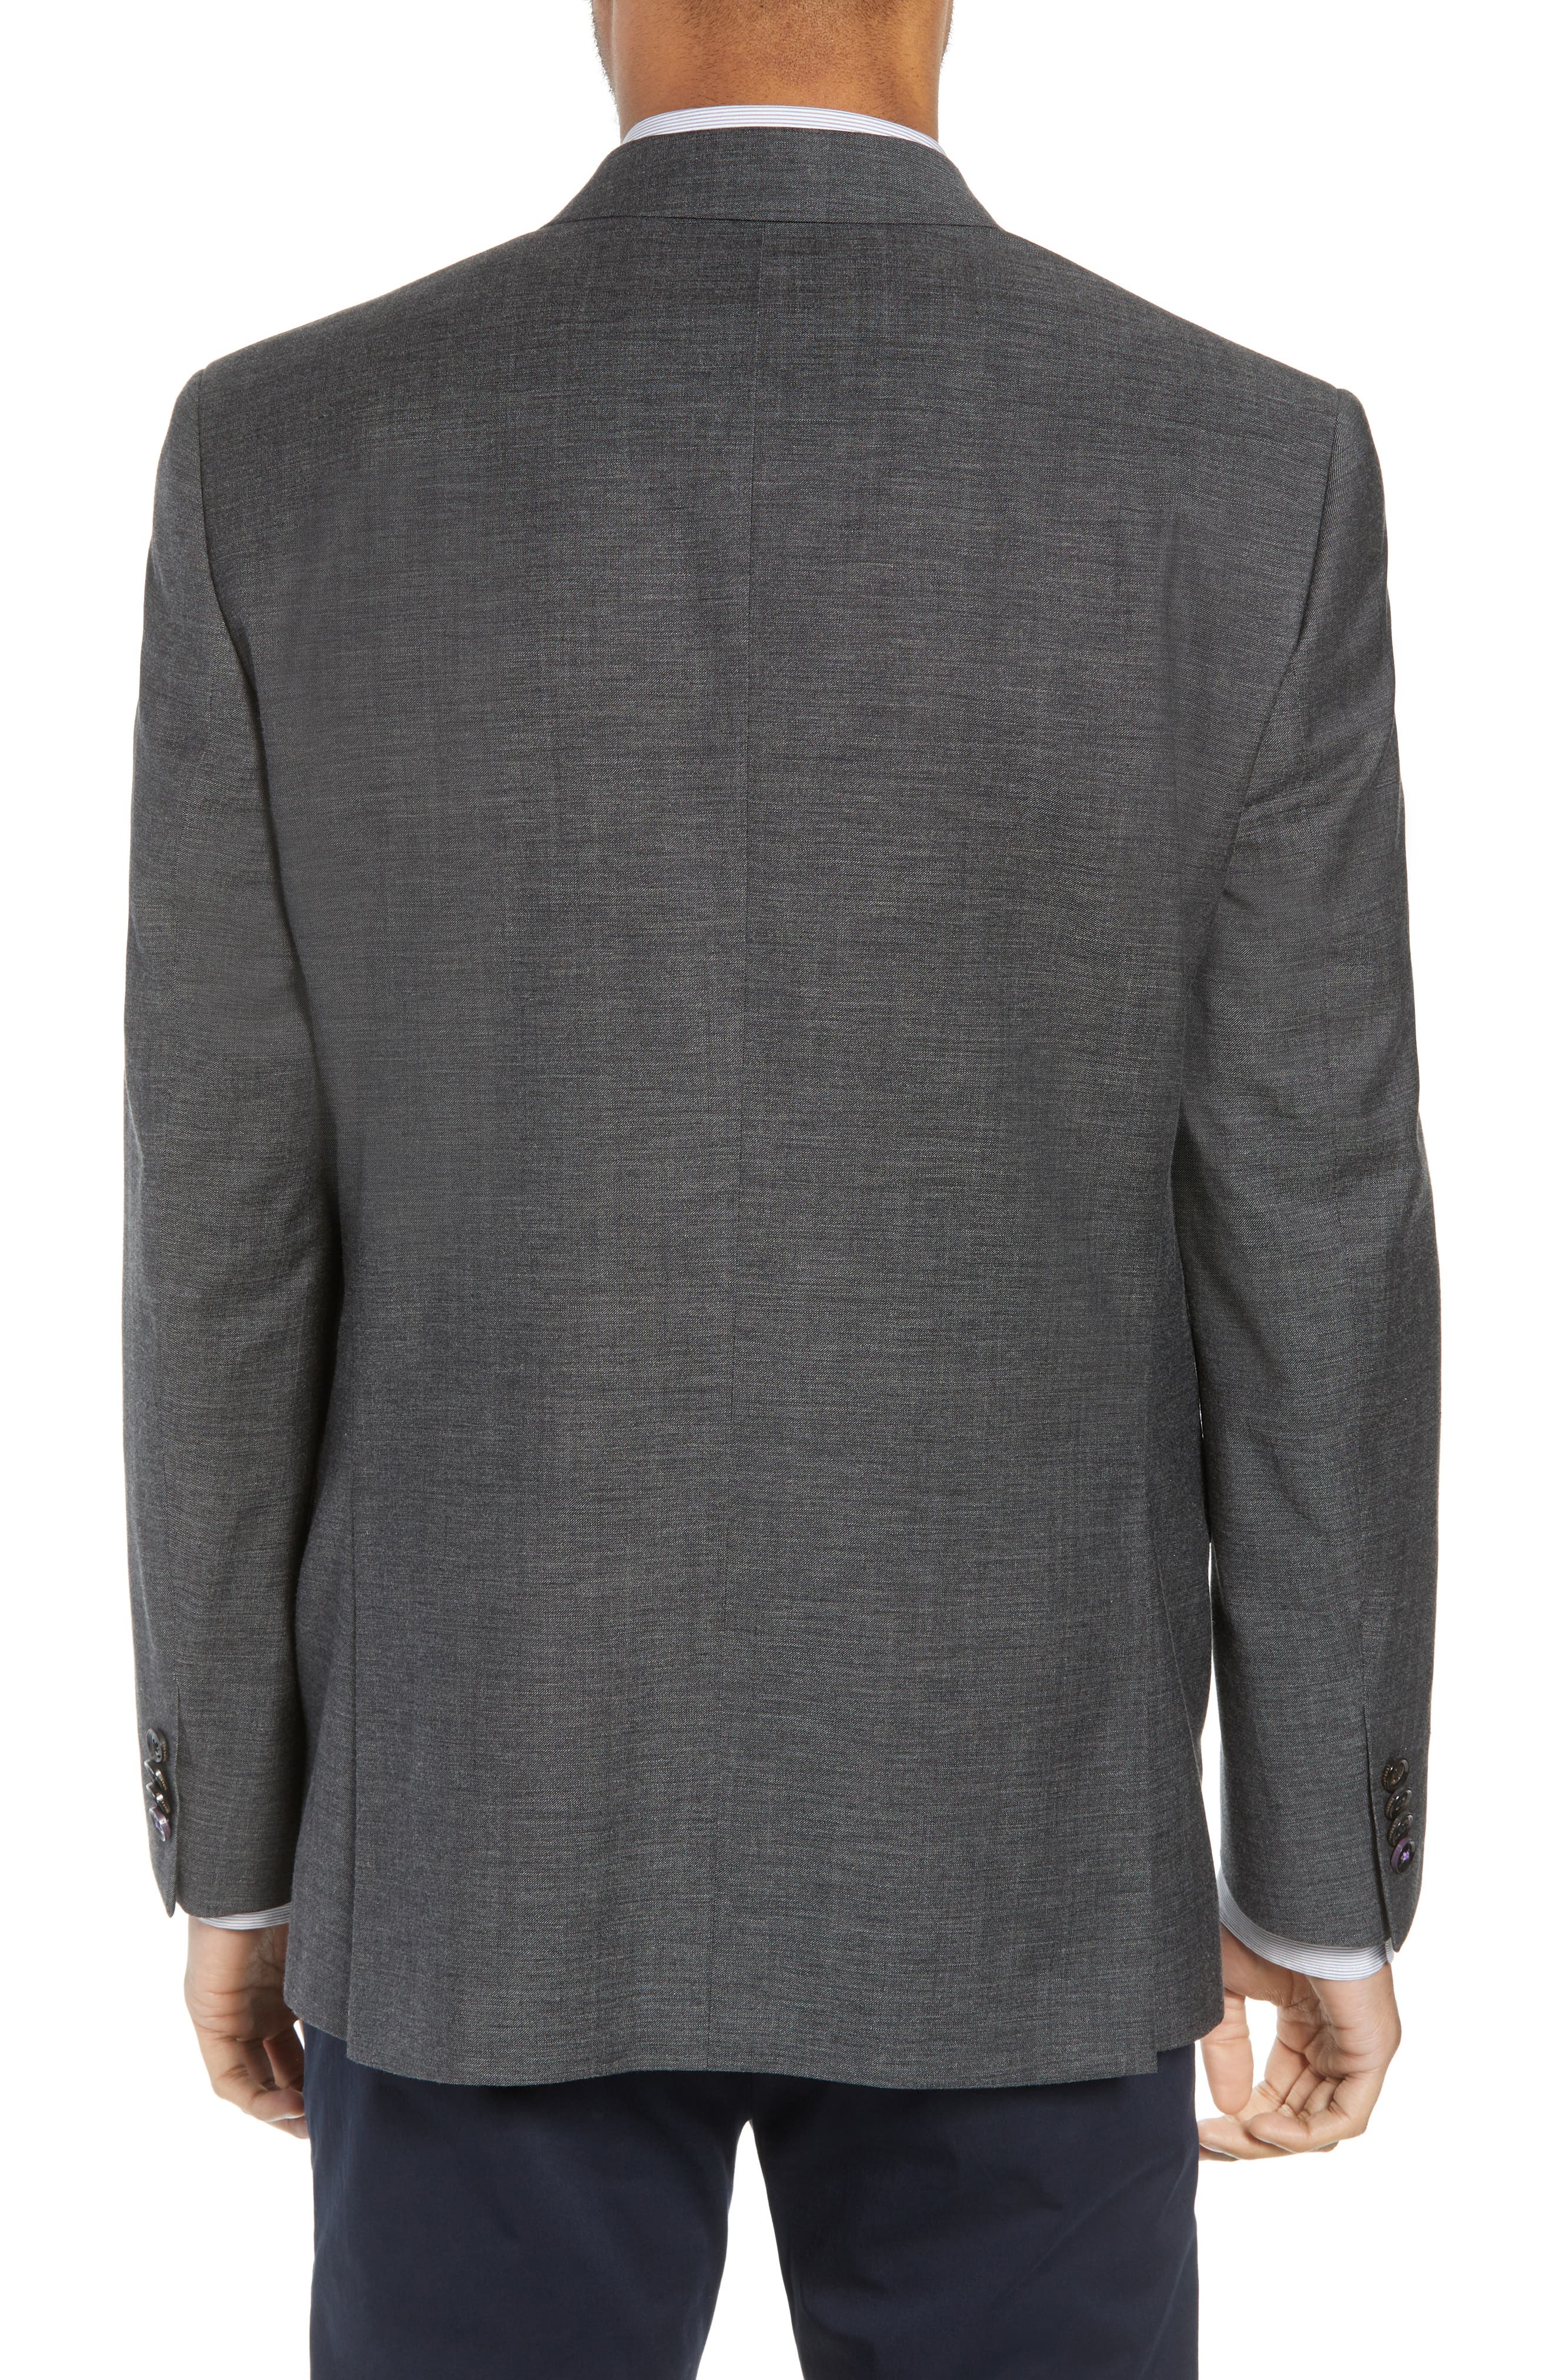 Jay Trim Fit Heathered Wool & Cotton Sport Coat,                             Alternate thumbnail 2, color,                             Grey